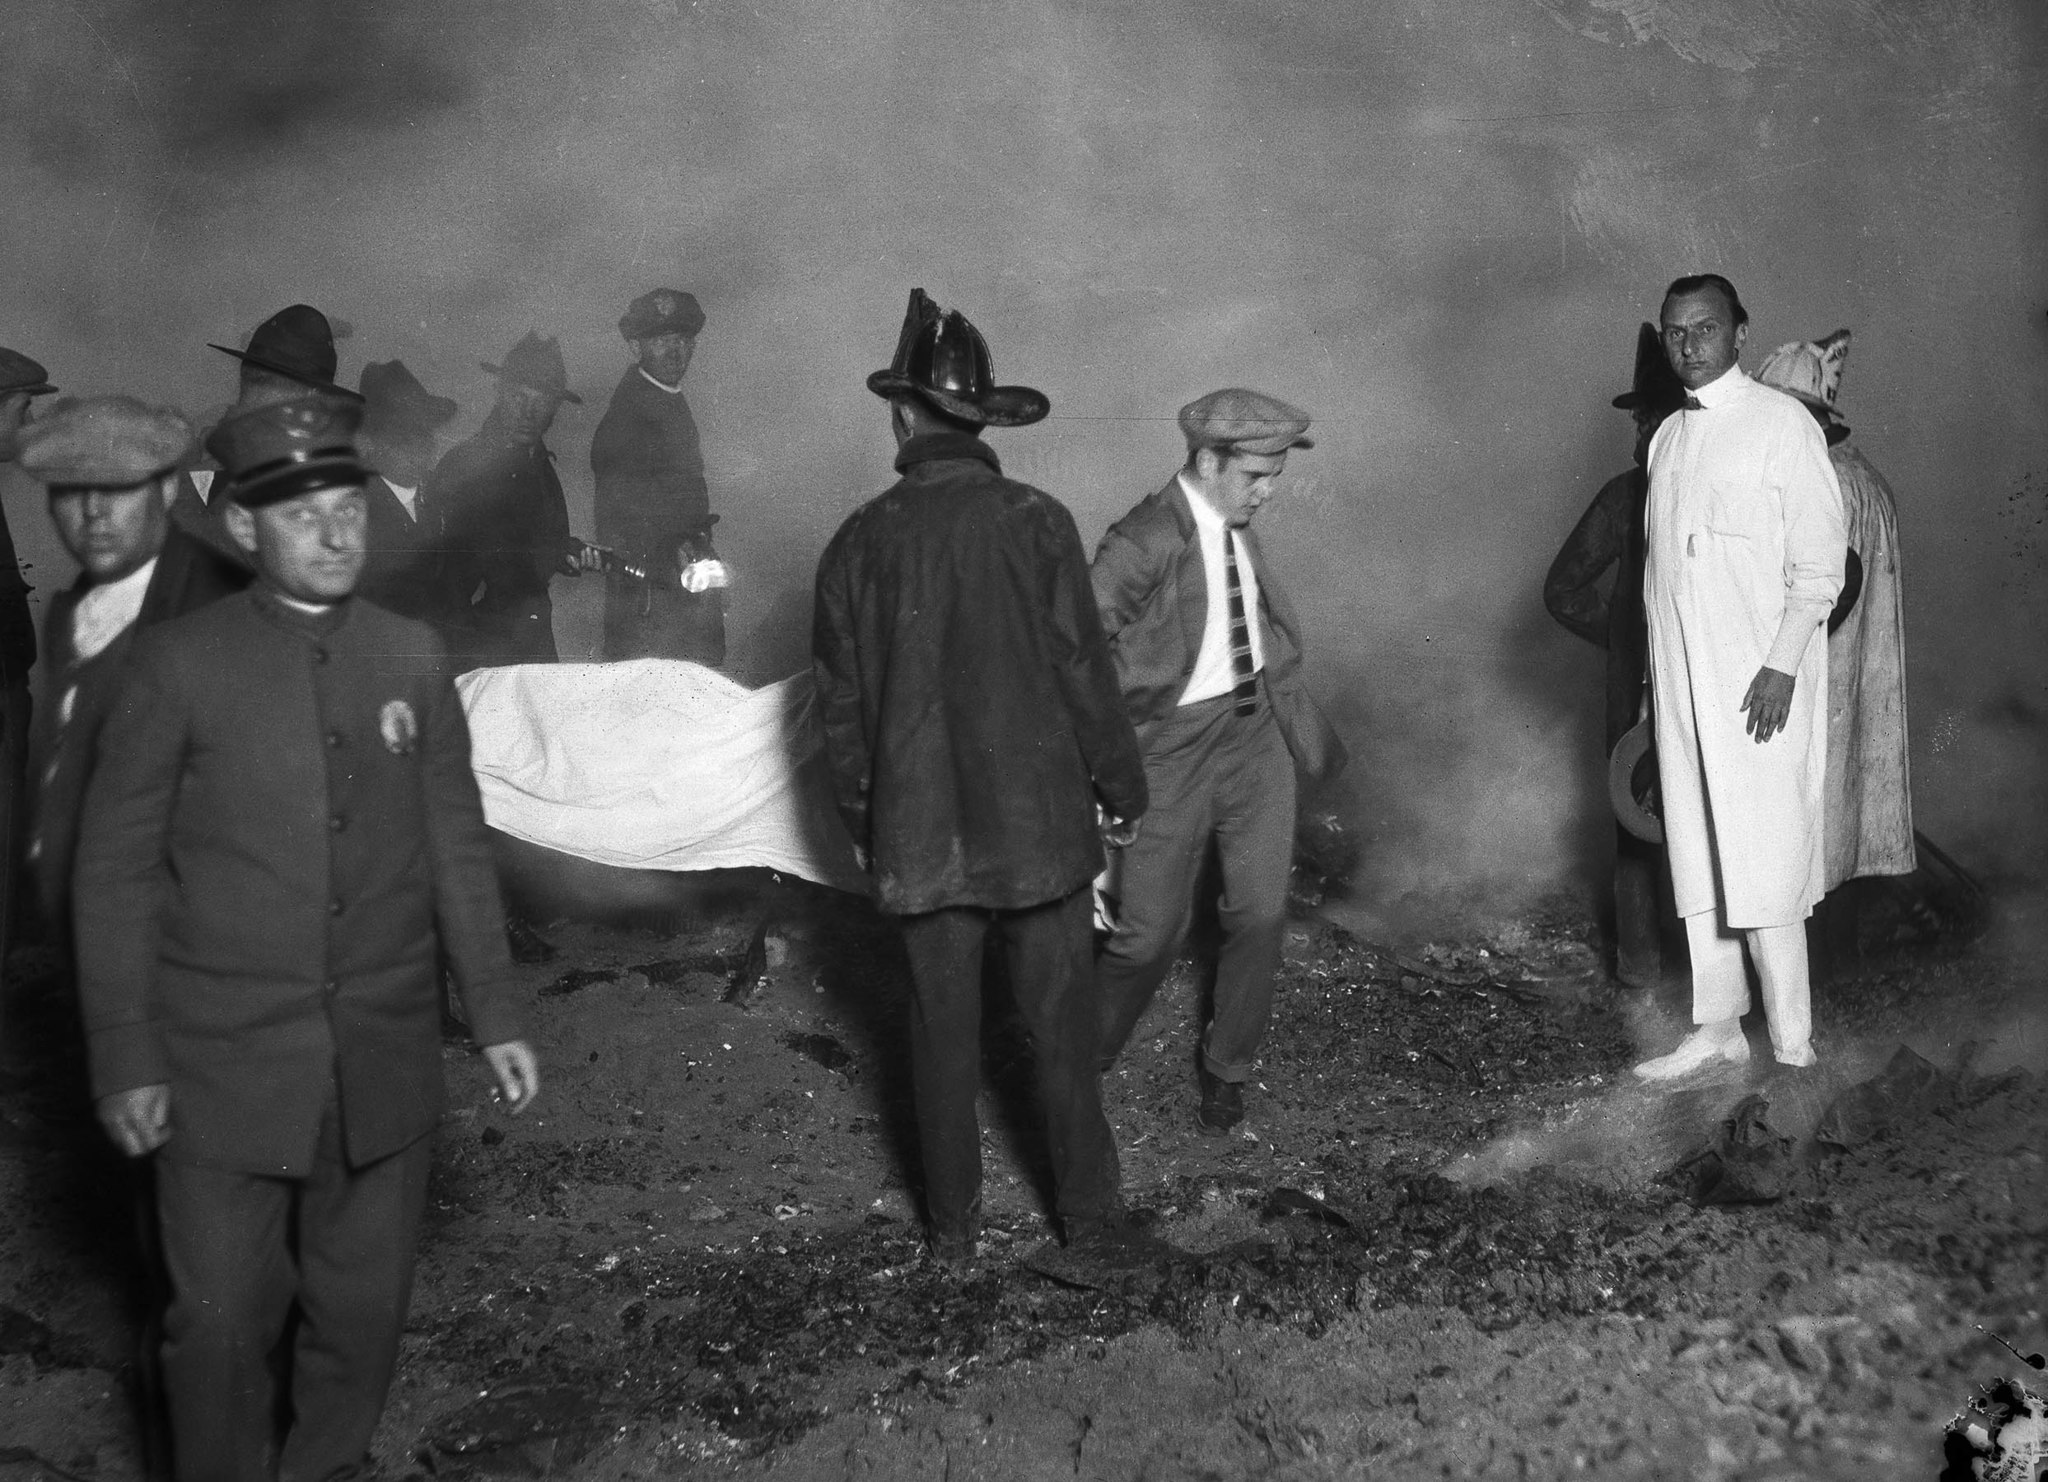 May 31, 1924: Rescue workers carry the covered remains of a victim of the fire at the Hope Developme